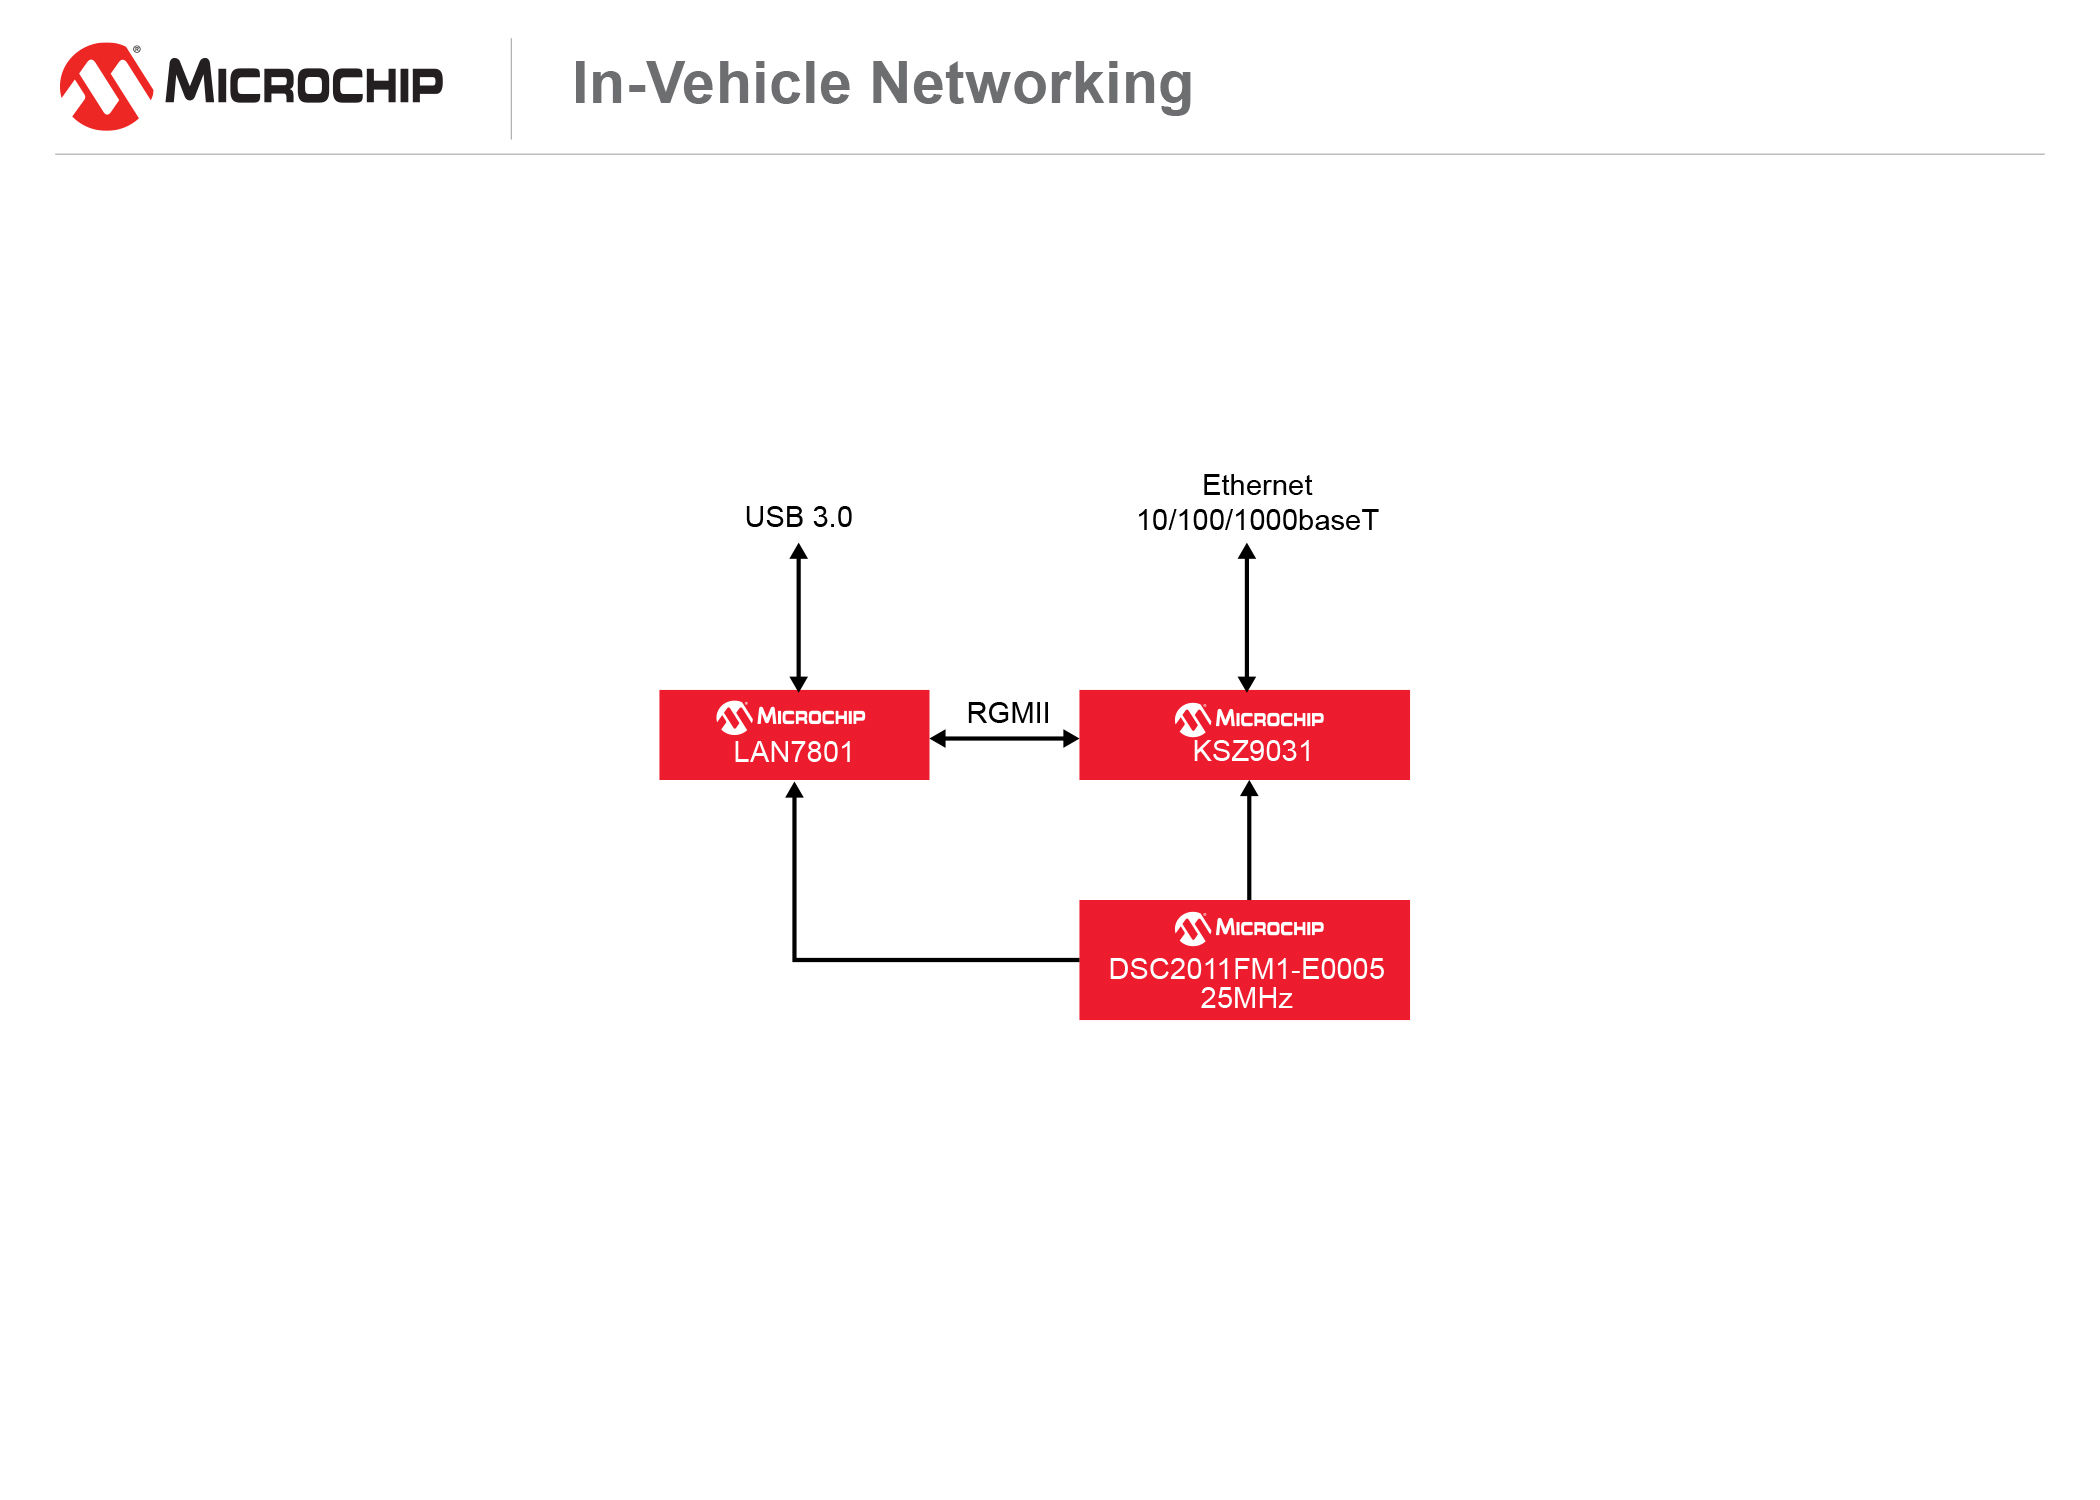 170623-AISG-DIAG-Automotive-In-Vehicle Networking-7x5 (1)